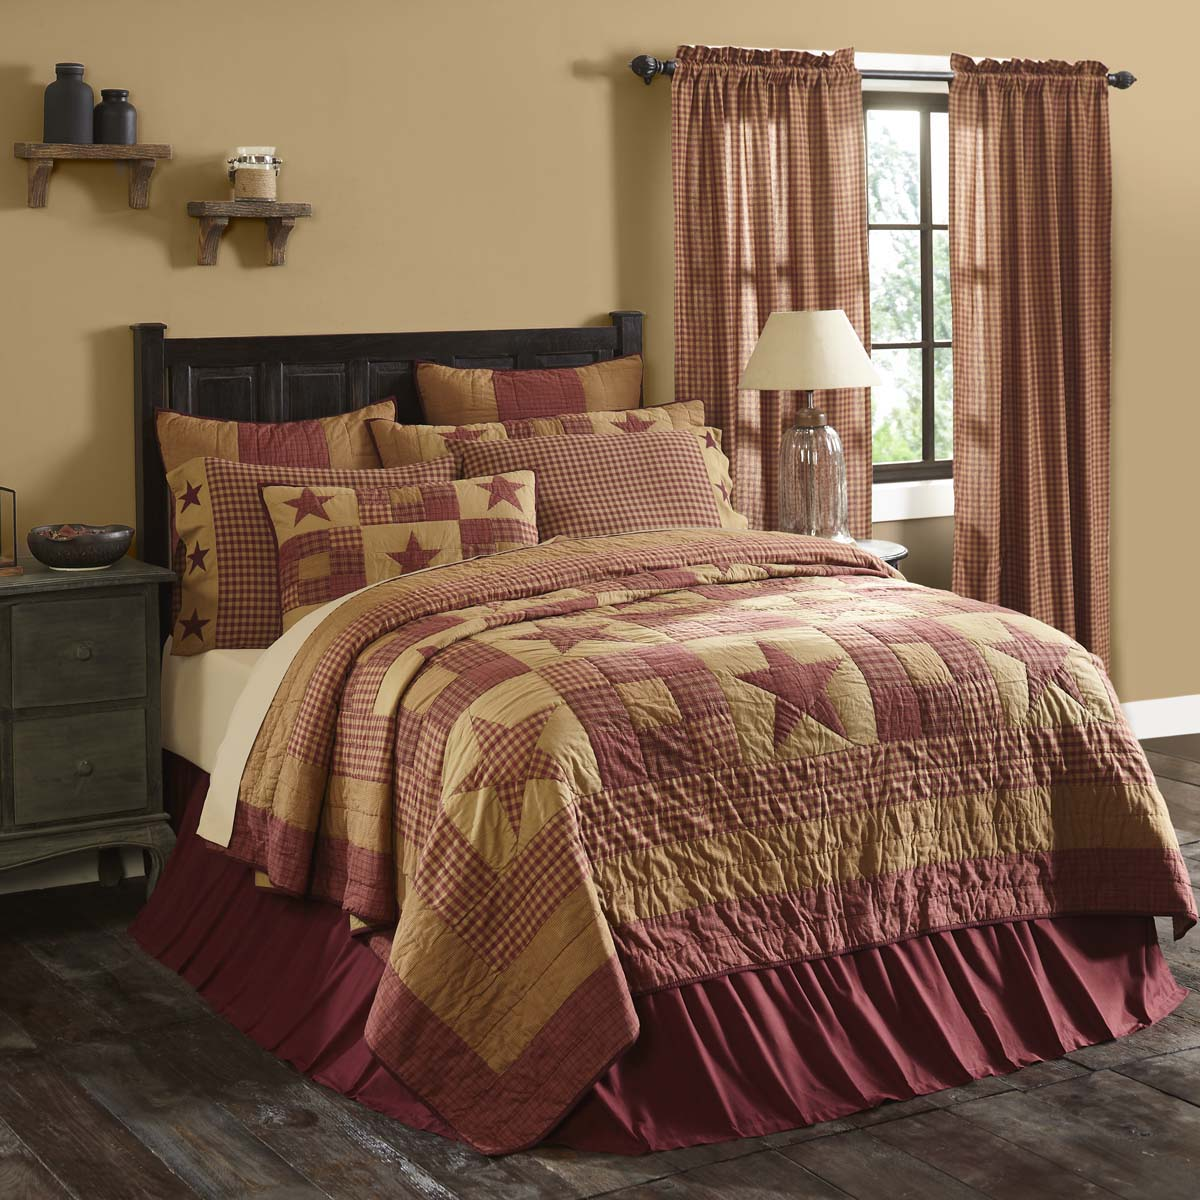 Ninepatch Star Twin Quilt 68Wx86L